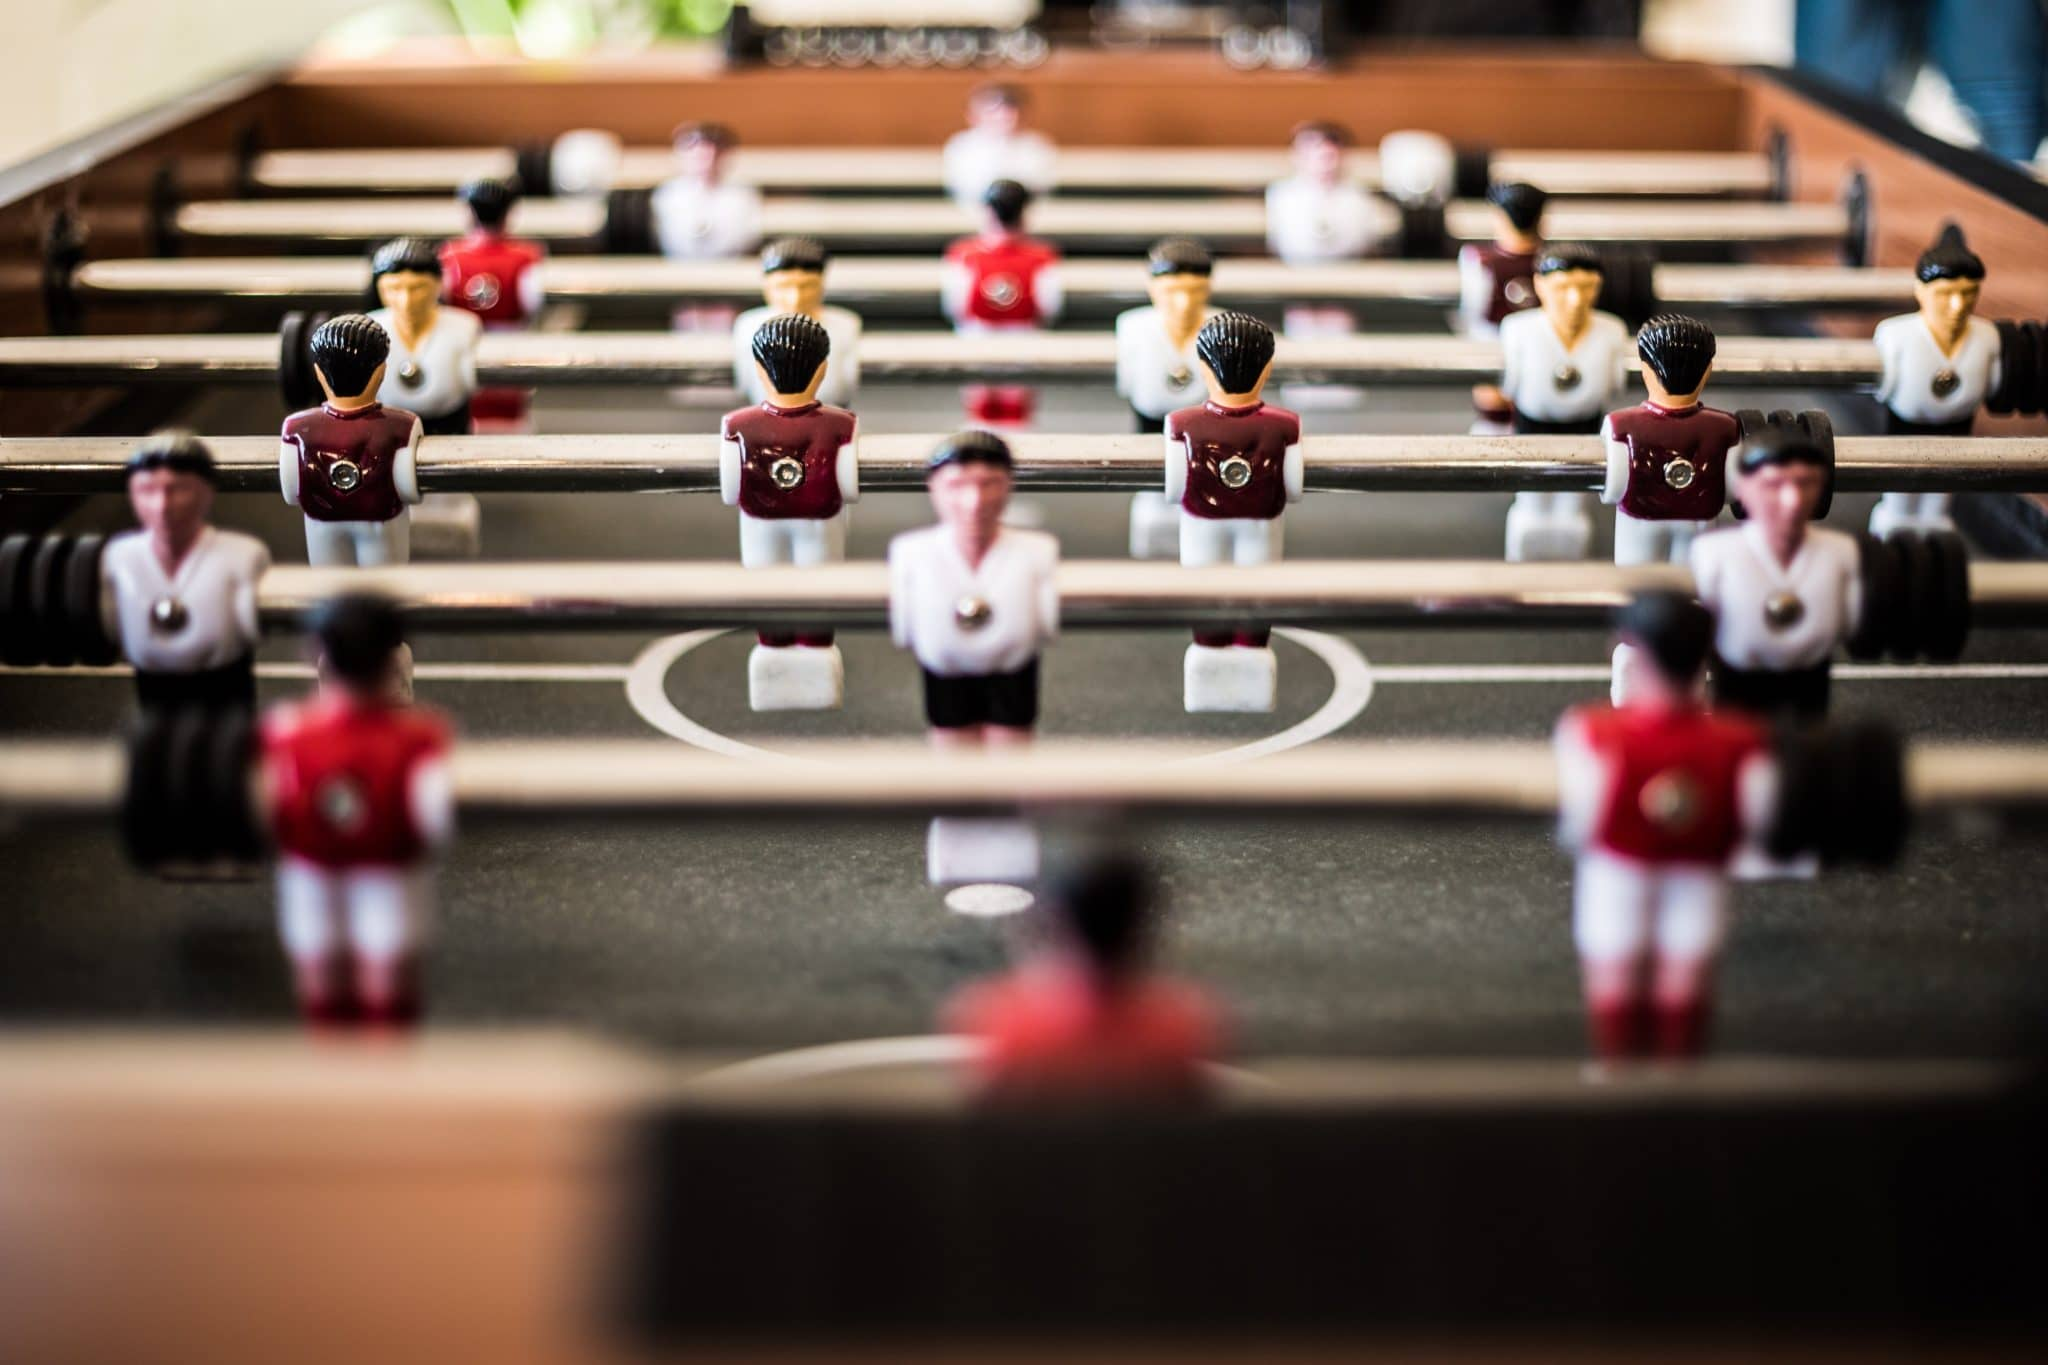 Marketing to Generation Z: forget the foosball tables